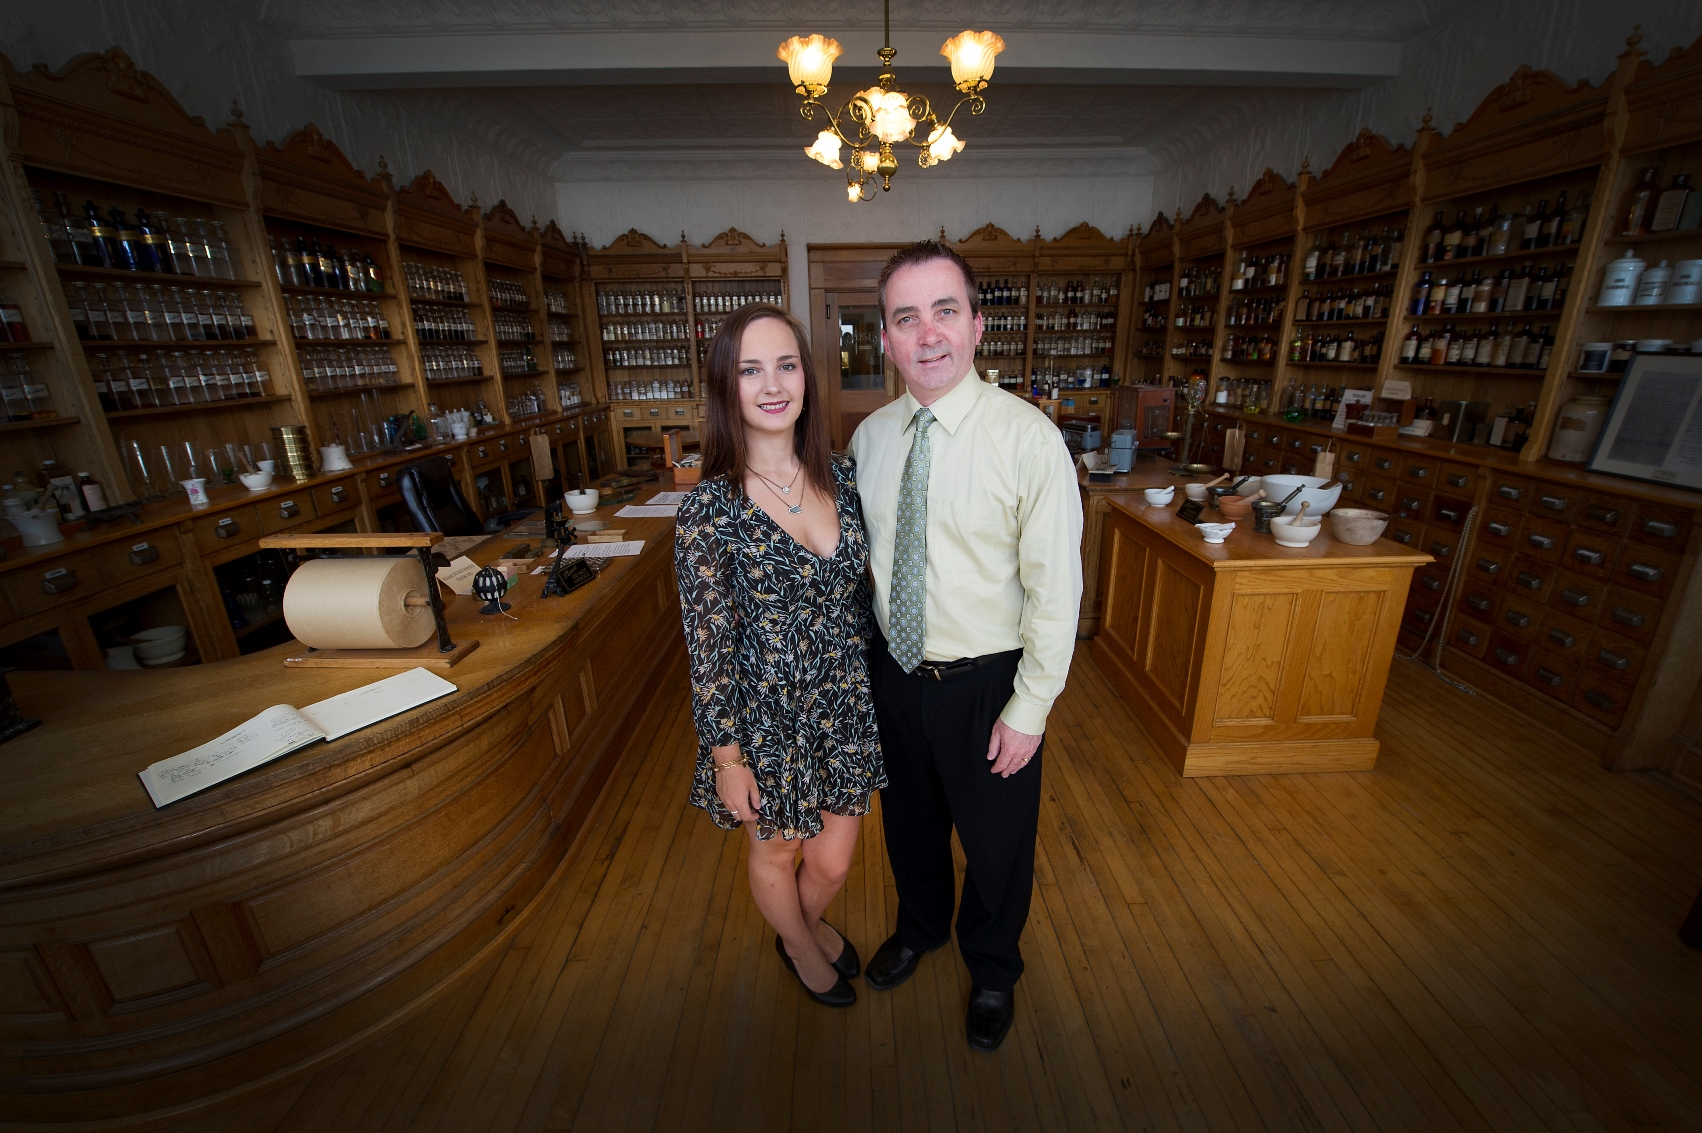 From left, Meghan and Ray Gulliver in the Apothecary Museum in St. John's.